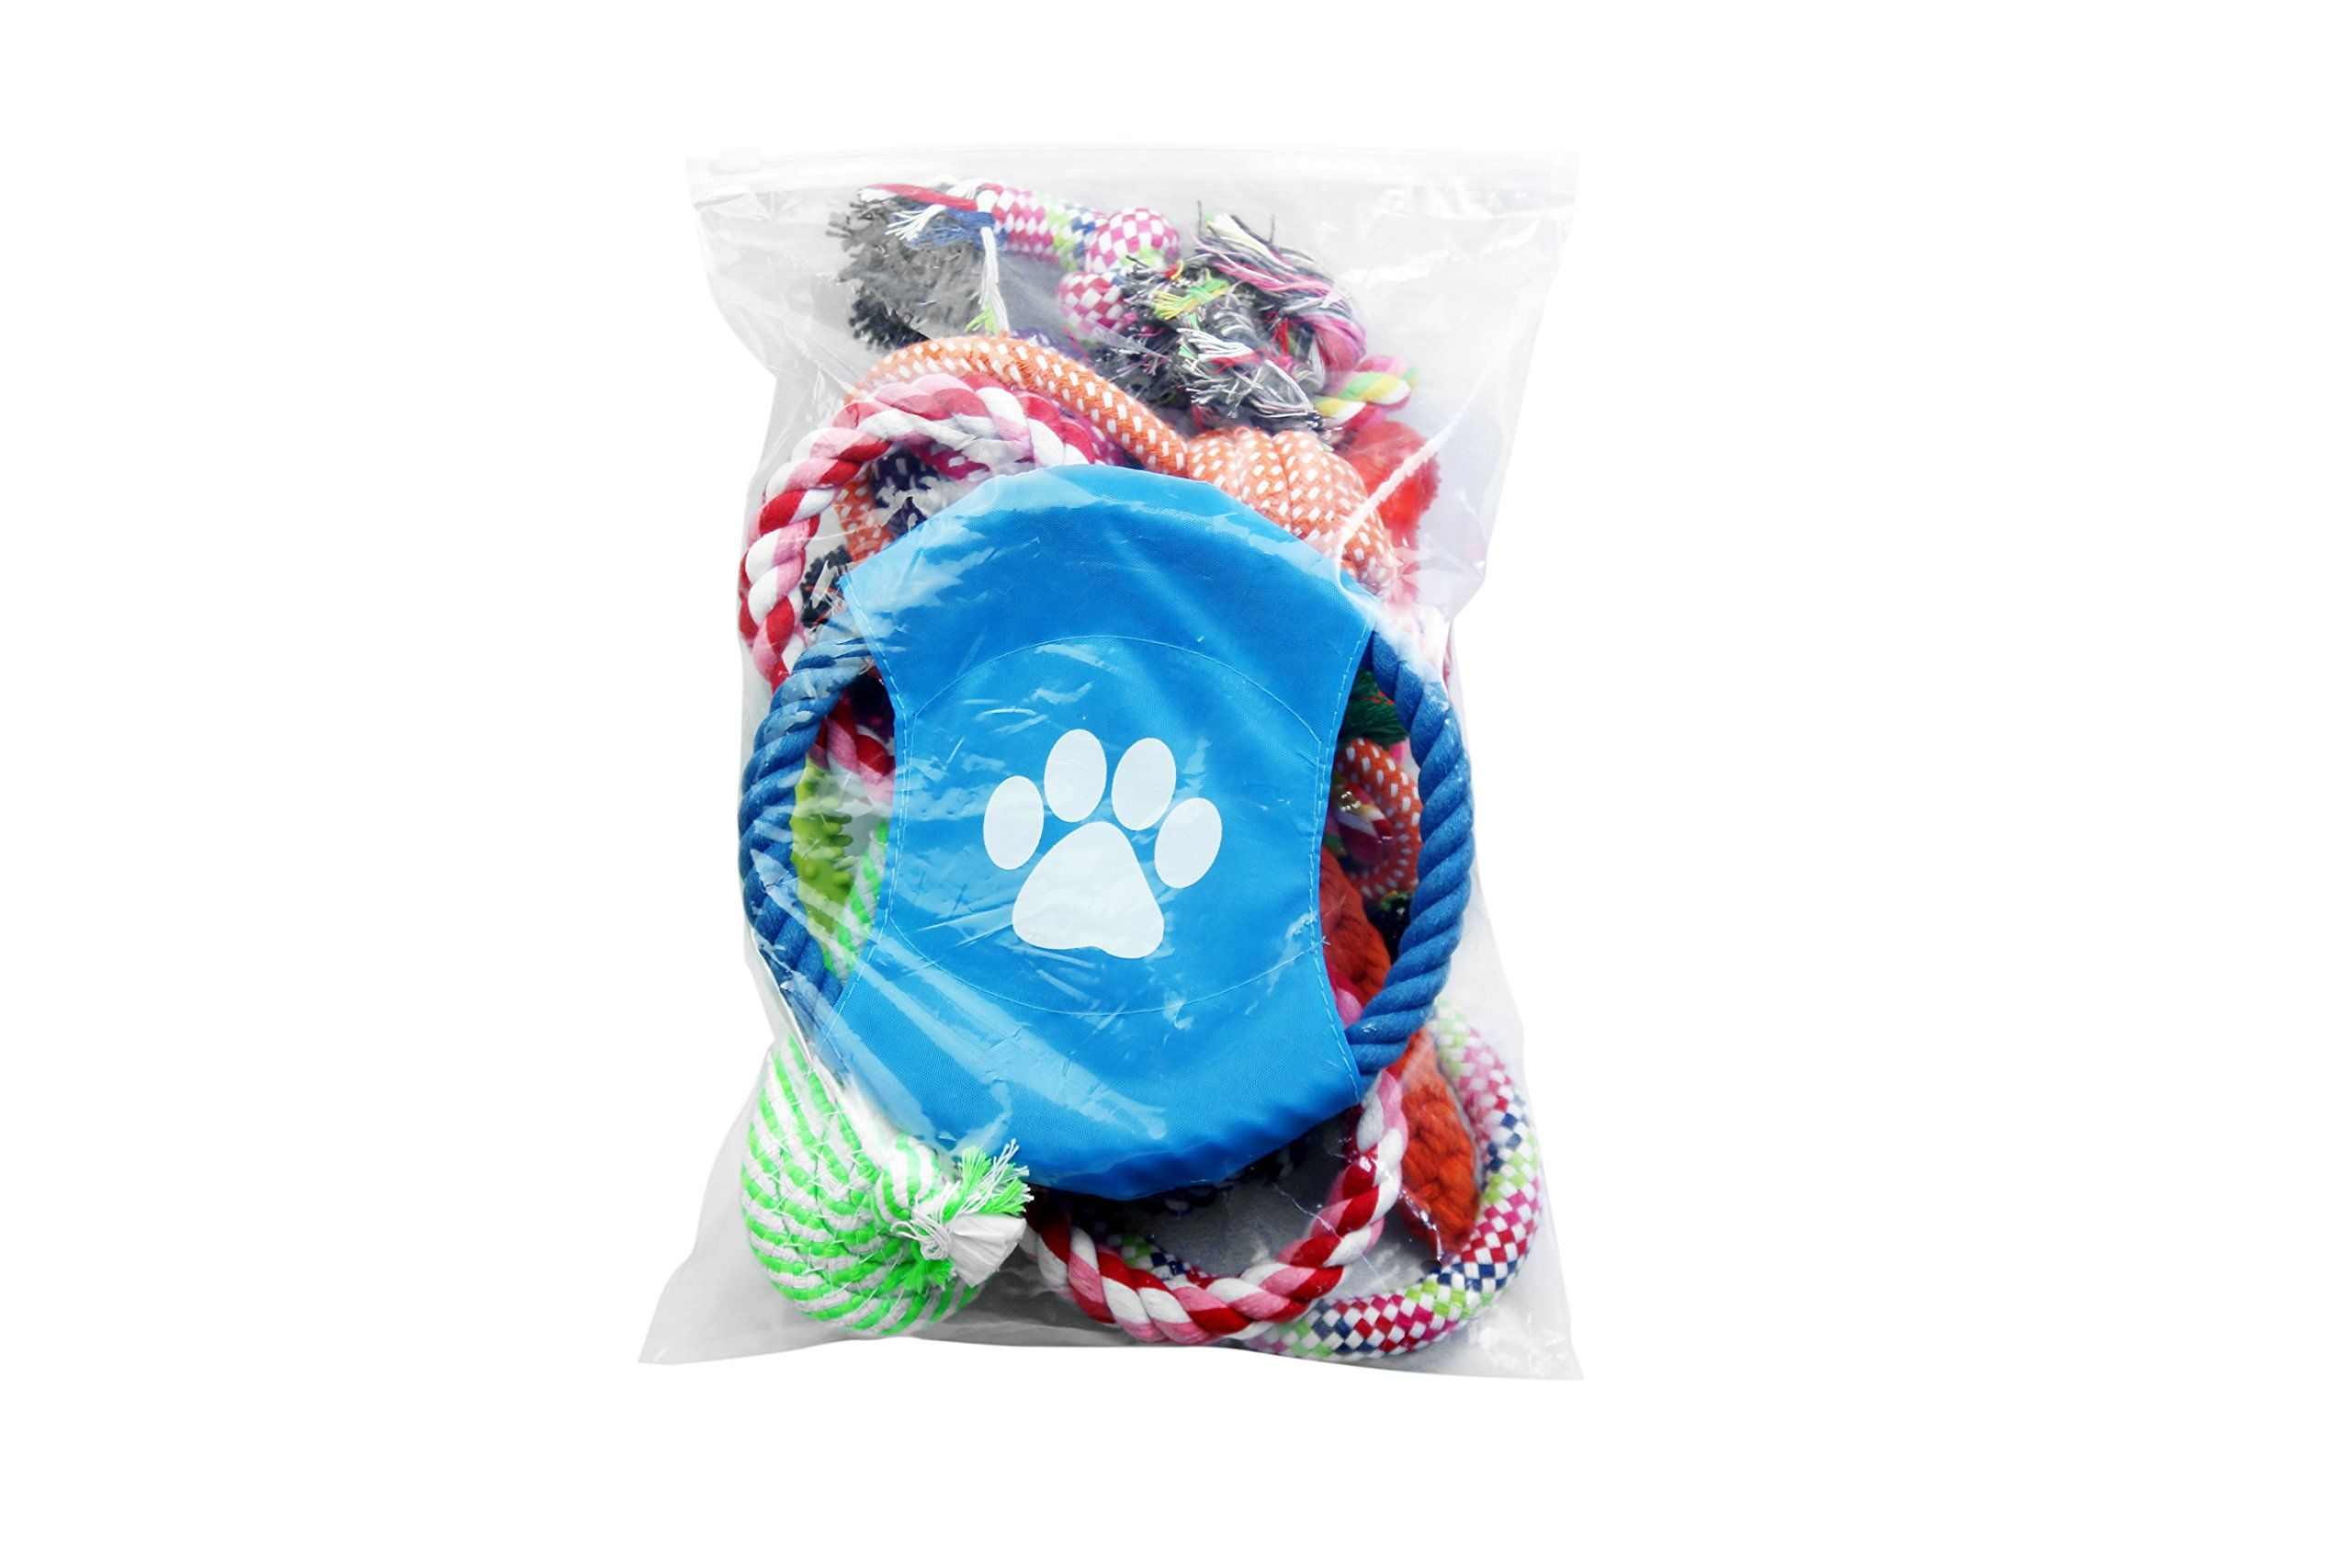 Team Howard 10 Pack Dog Toys A Dog Rope Toys A Best Chew Toys For Teething Puppy A Teething Toy For Smal Puppy Toys Teething Puppy Teething Rope Dog Toys